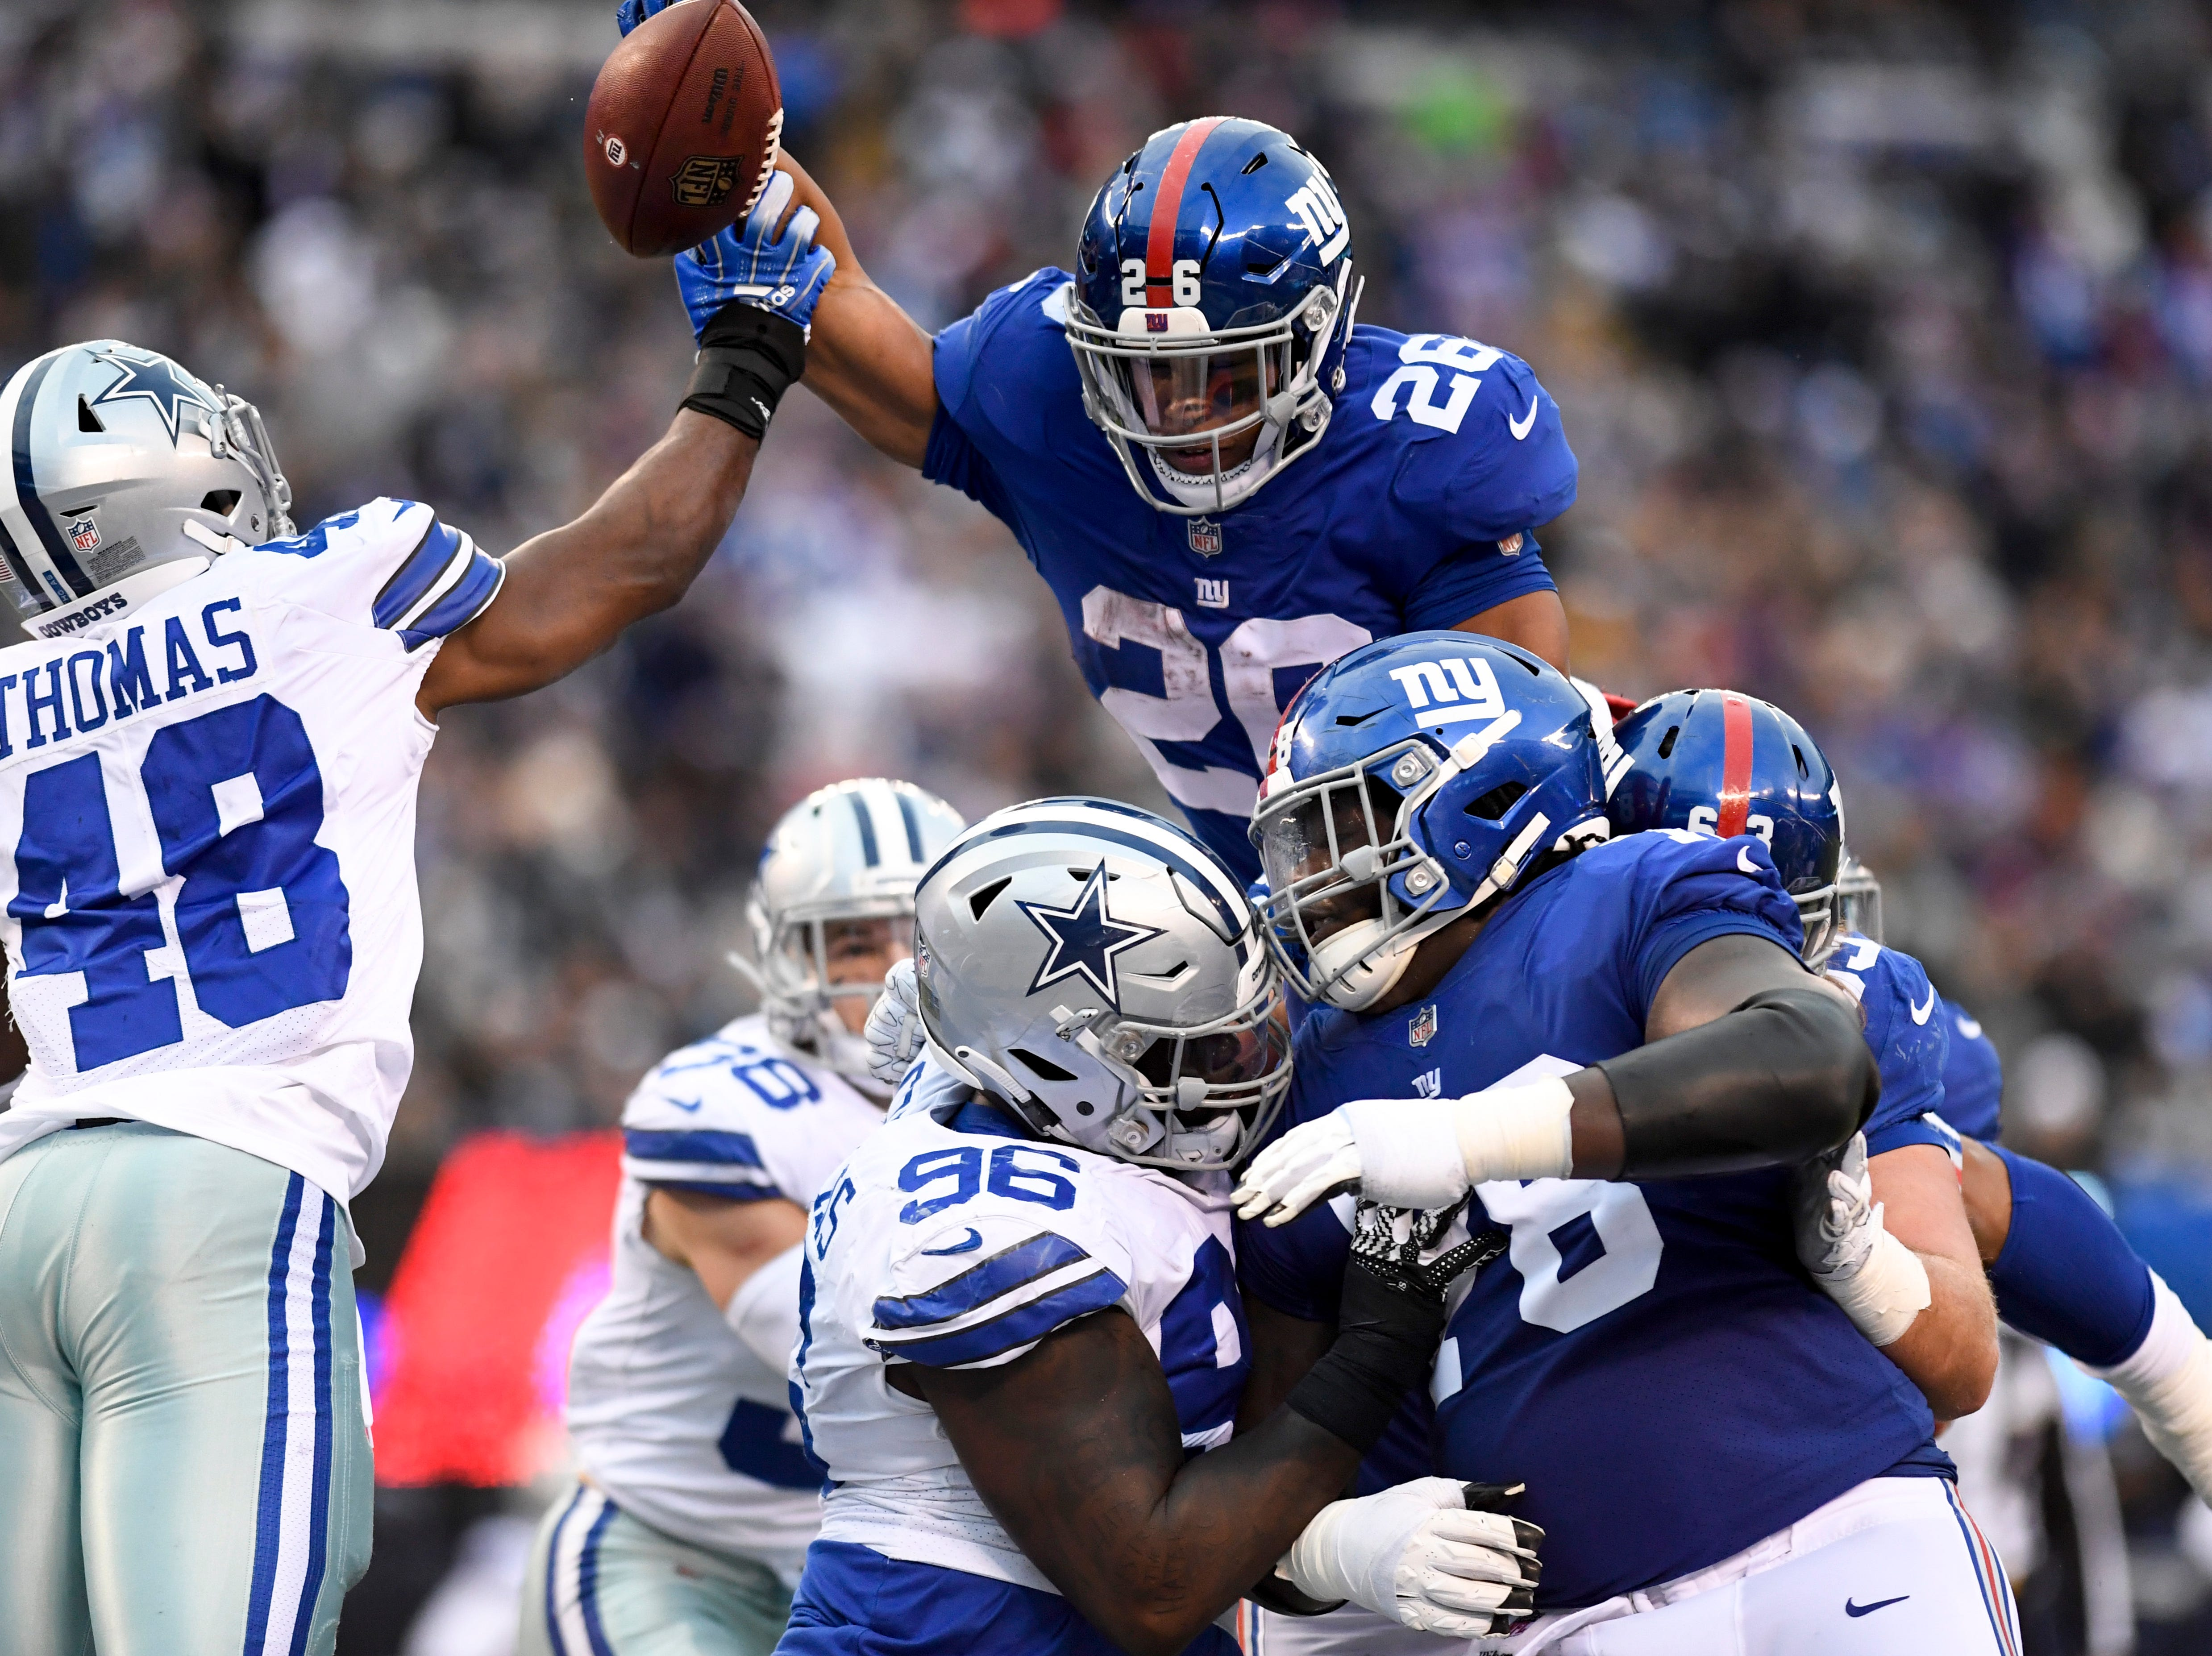 New York Giants running back Saquon Barkley (26) leaps into the endzone for a touchdown in the fourth quarter. The New York Giants lose to the Dallas Cowboys 36-35 on Sunday, Dec. 30, 2018, in East Rutherford.